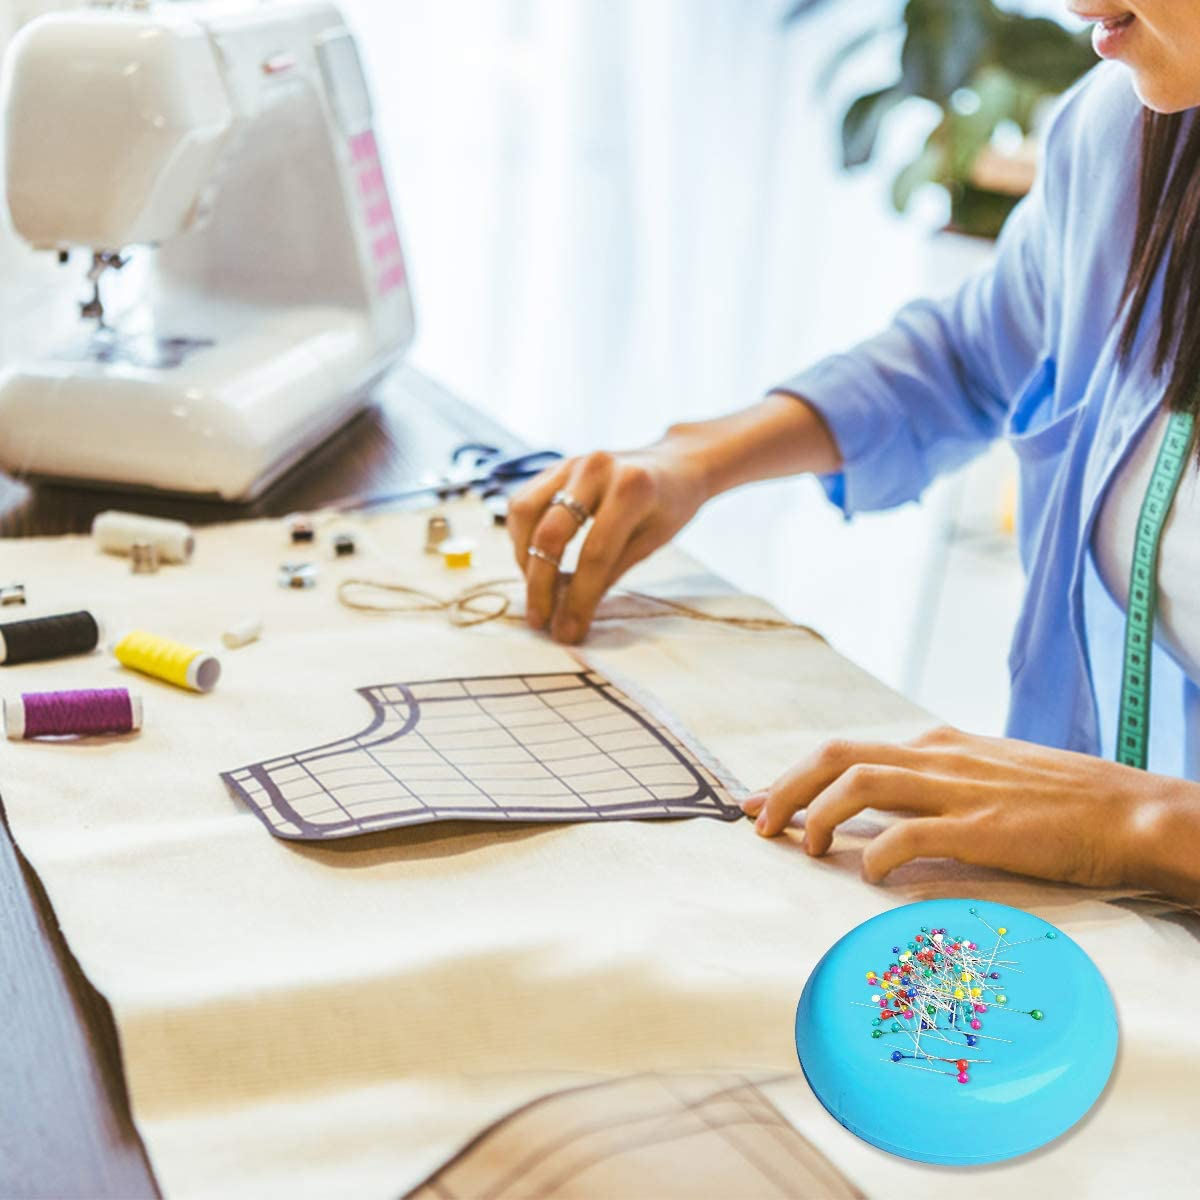 Magnetic Sewing Pincushion with 100PCS Plastic Head Pins Blue Round Magnetic Pins Holder Sewing Needle Holder for Daily Sewing